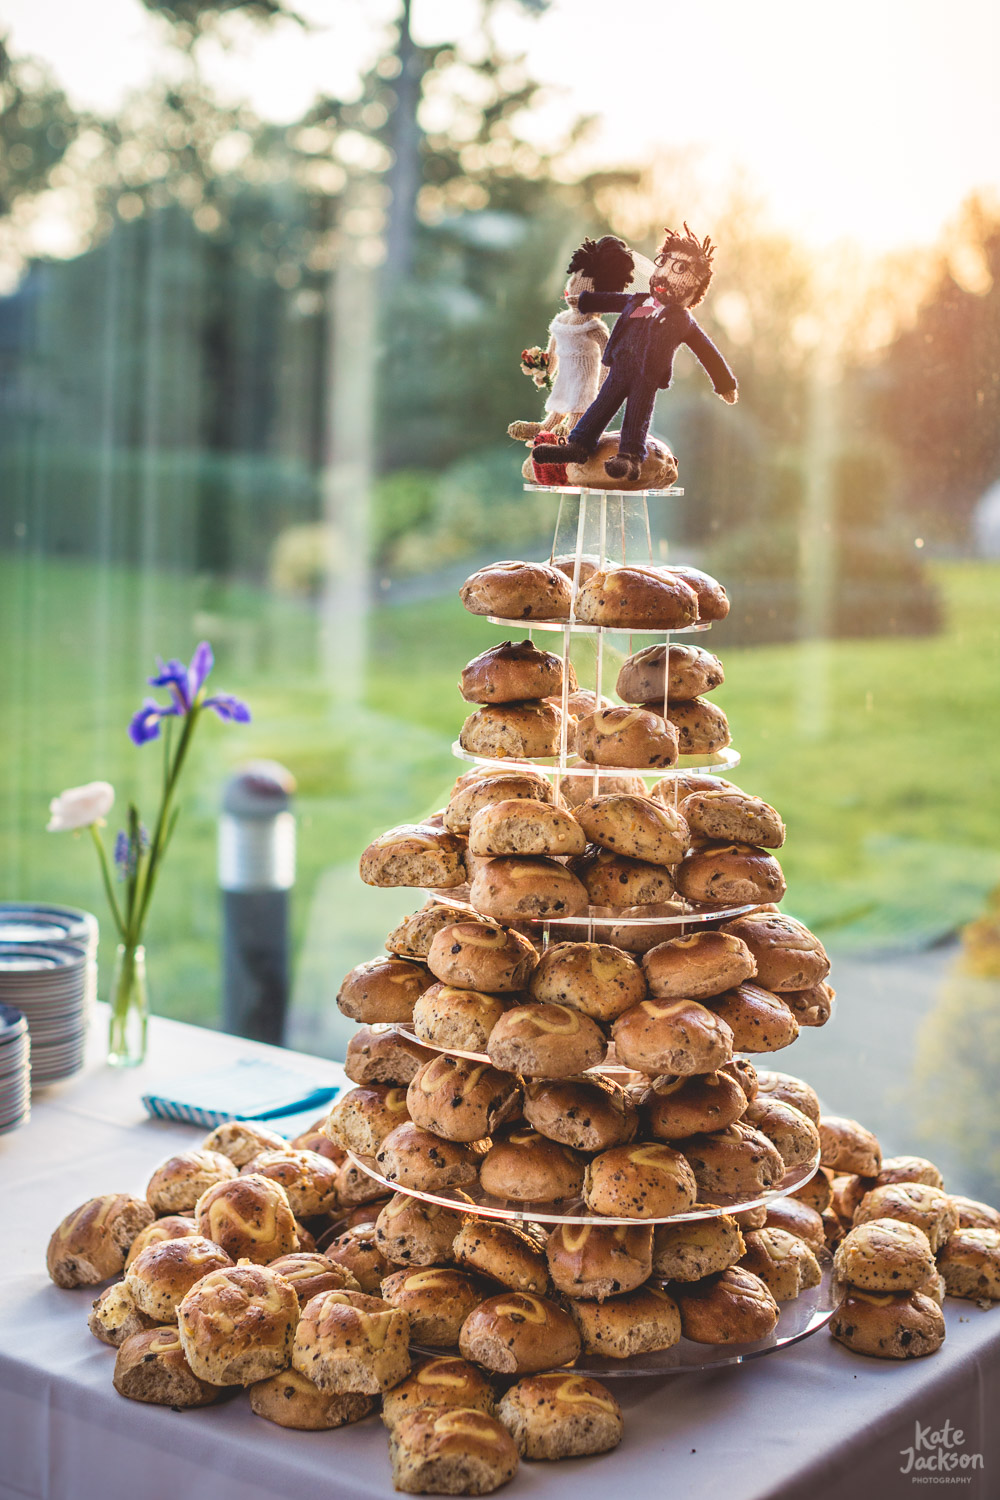 Alternative Easter Wedding Cake Ideas - Hot Cross buns from Loaf in Birmingham